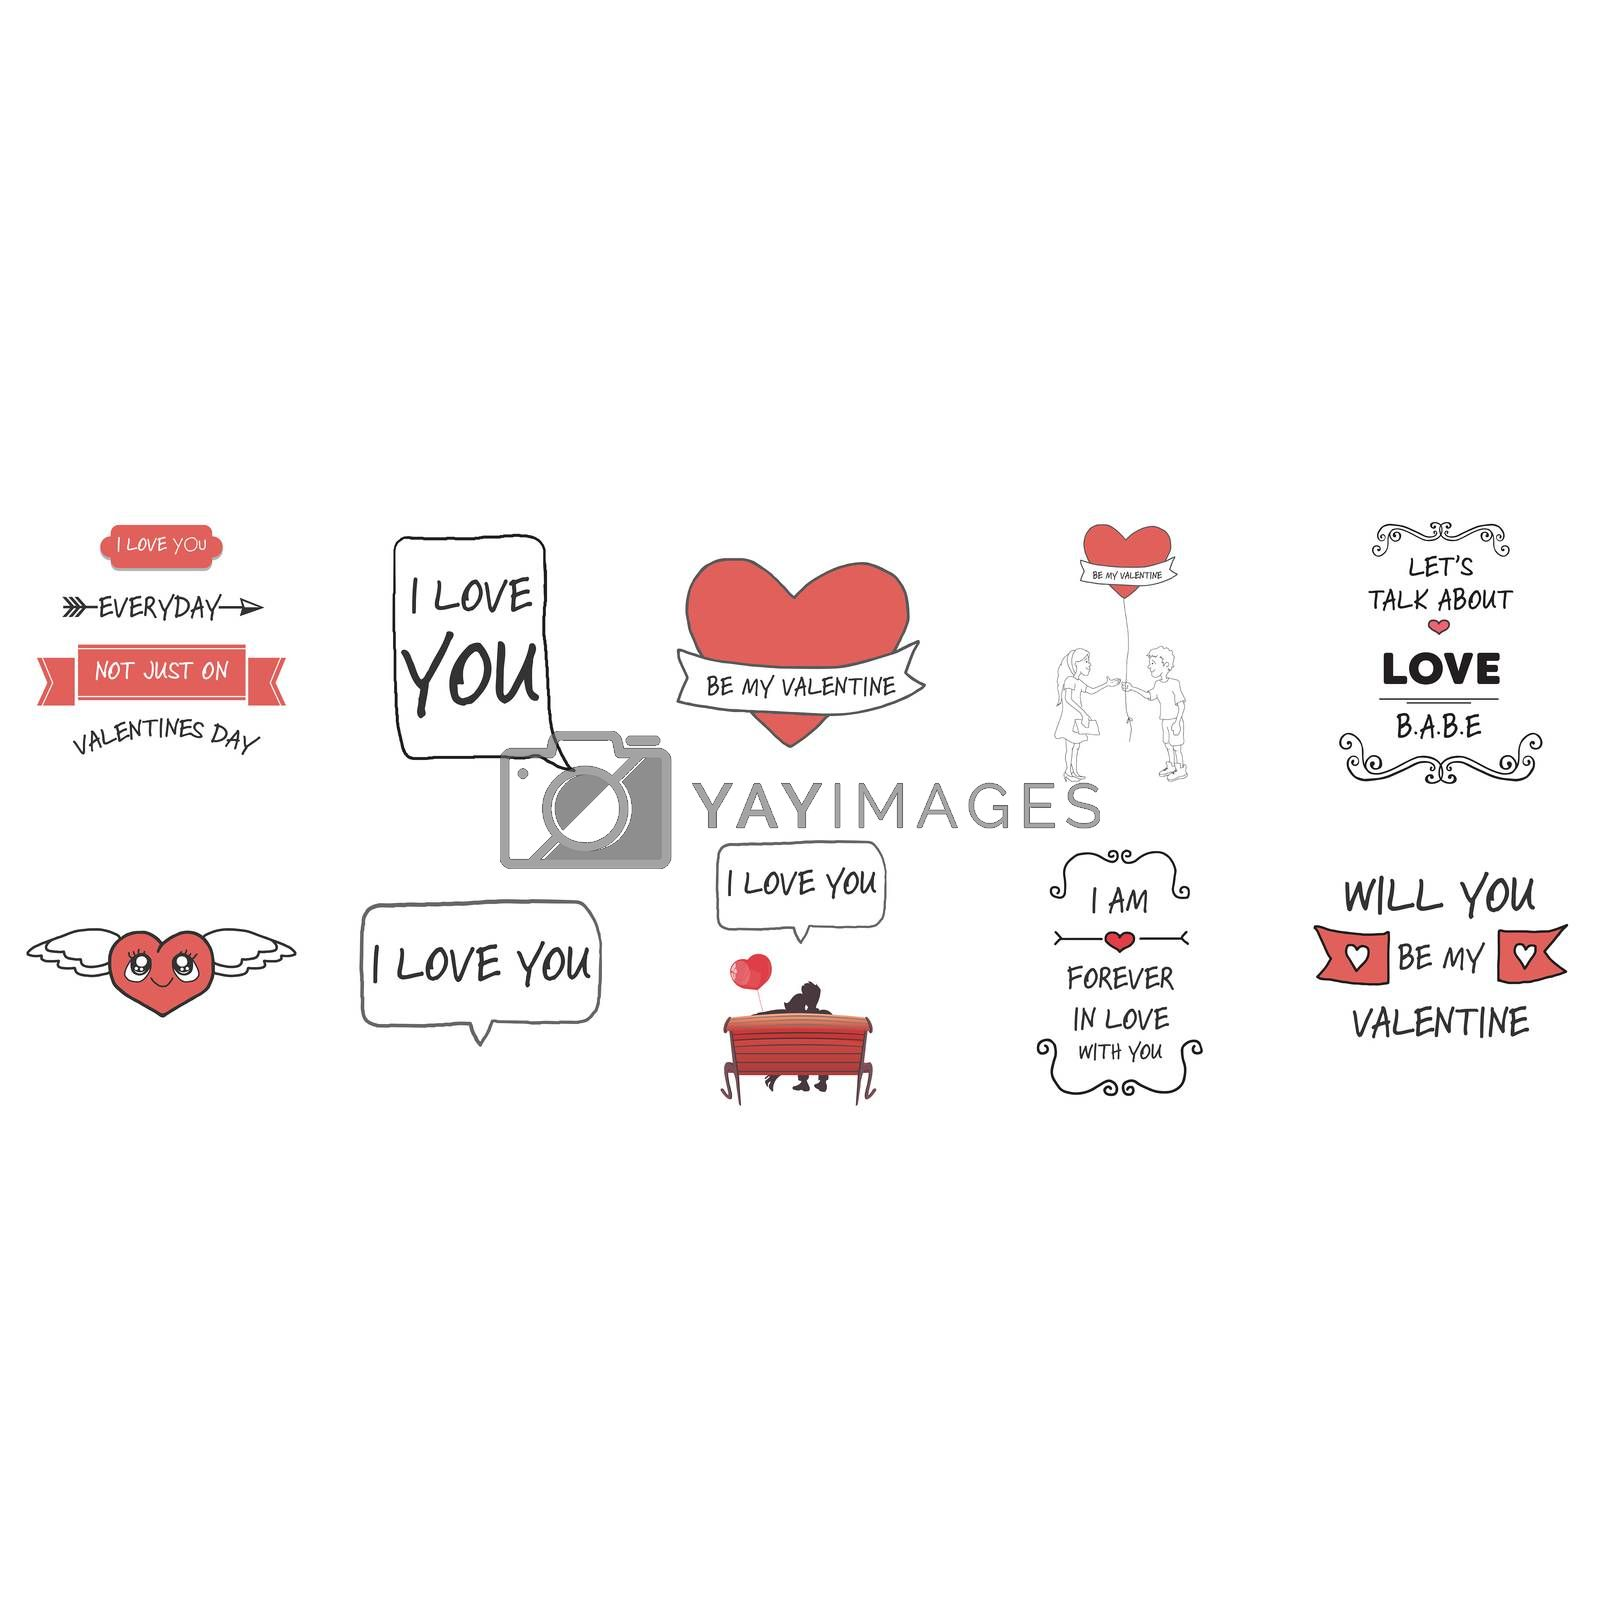 Love and Valentines day vector icons against white background